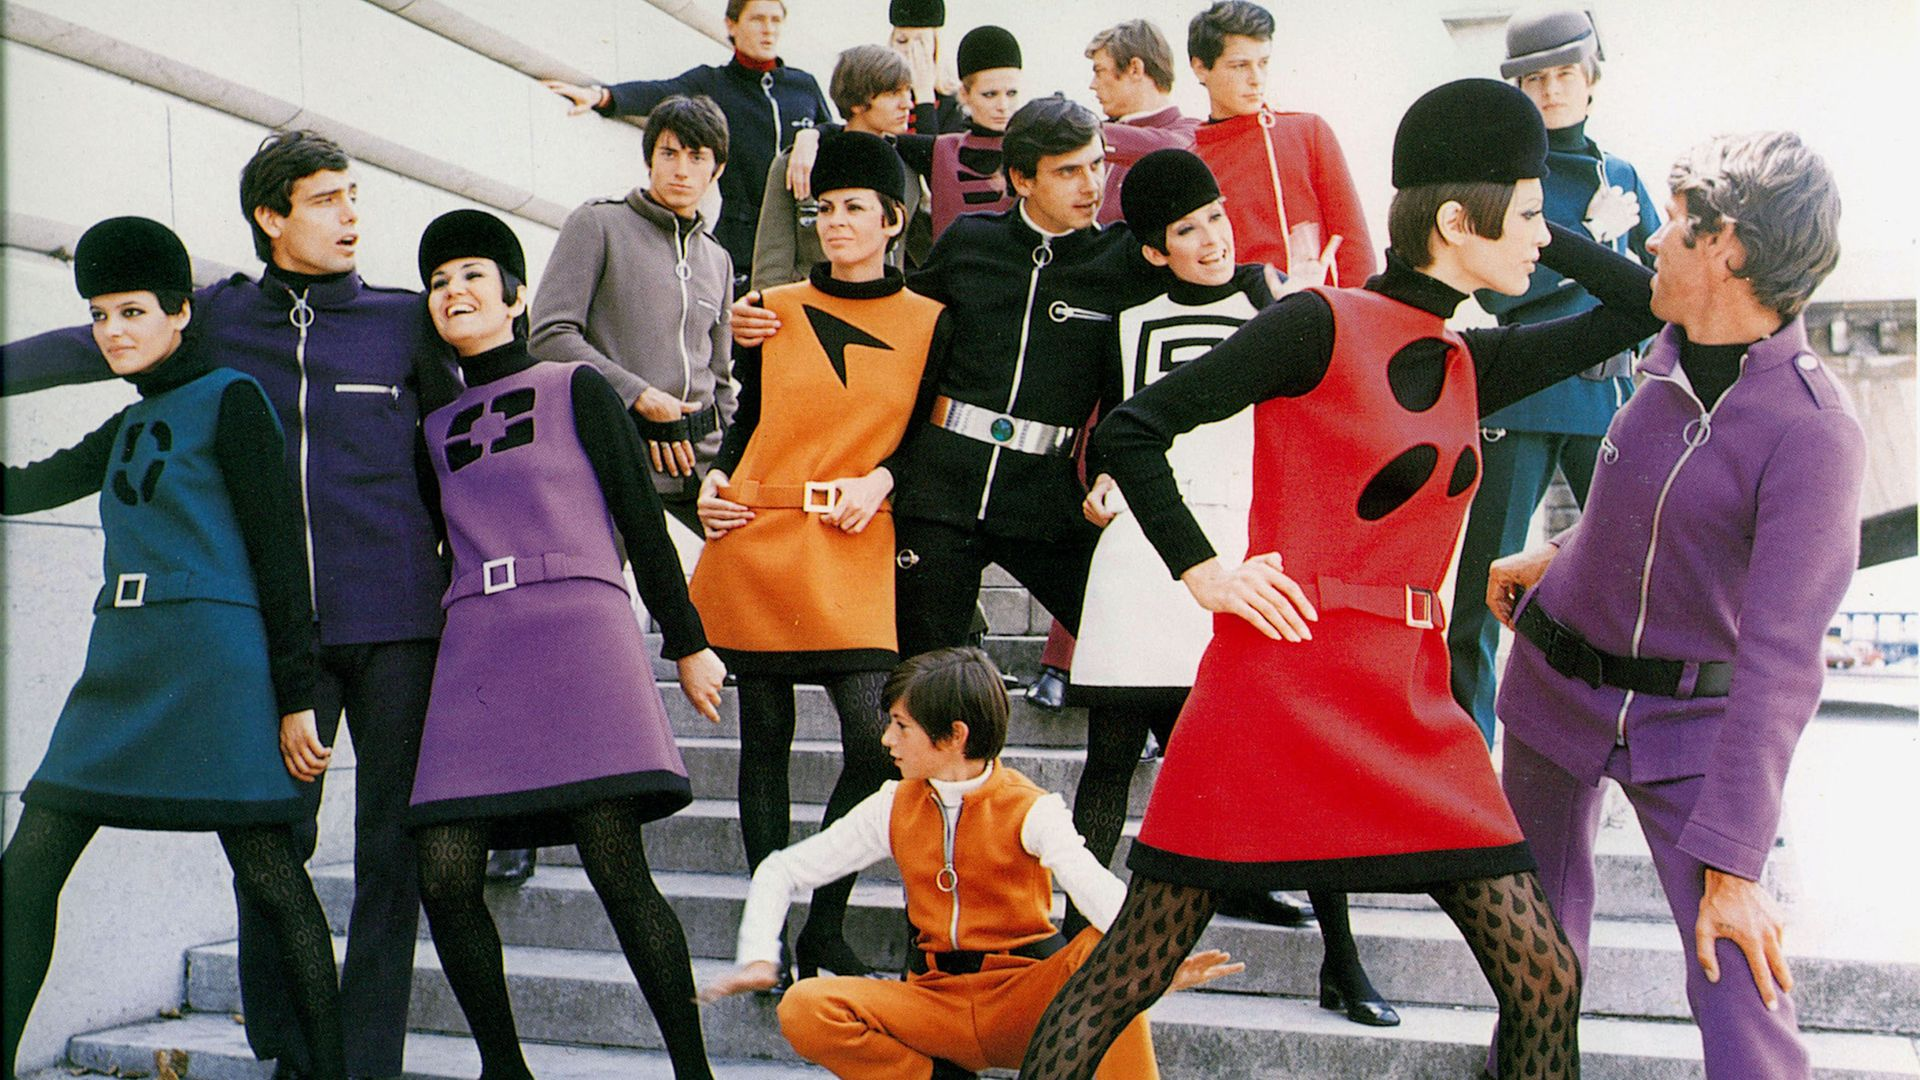 A still from House of Cardin, released via Blue Finch Film - Credit: Pierre Cardin Archive